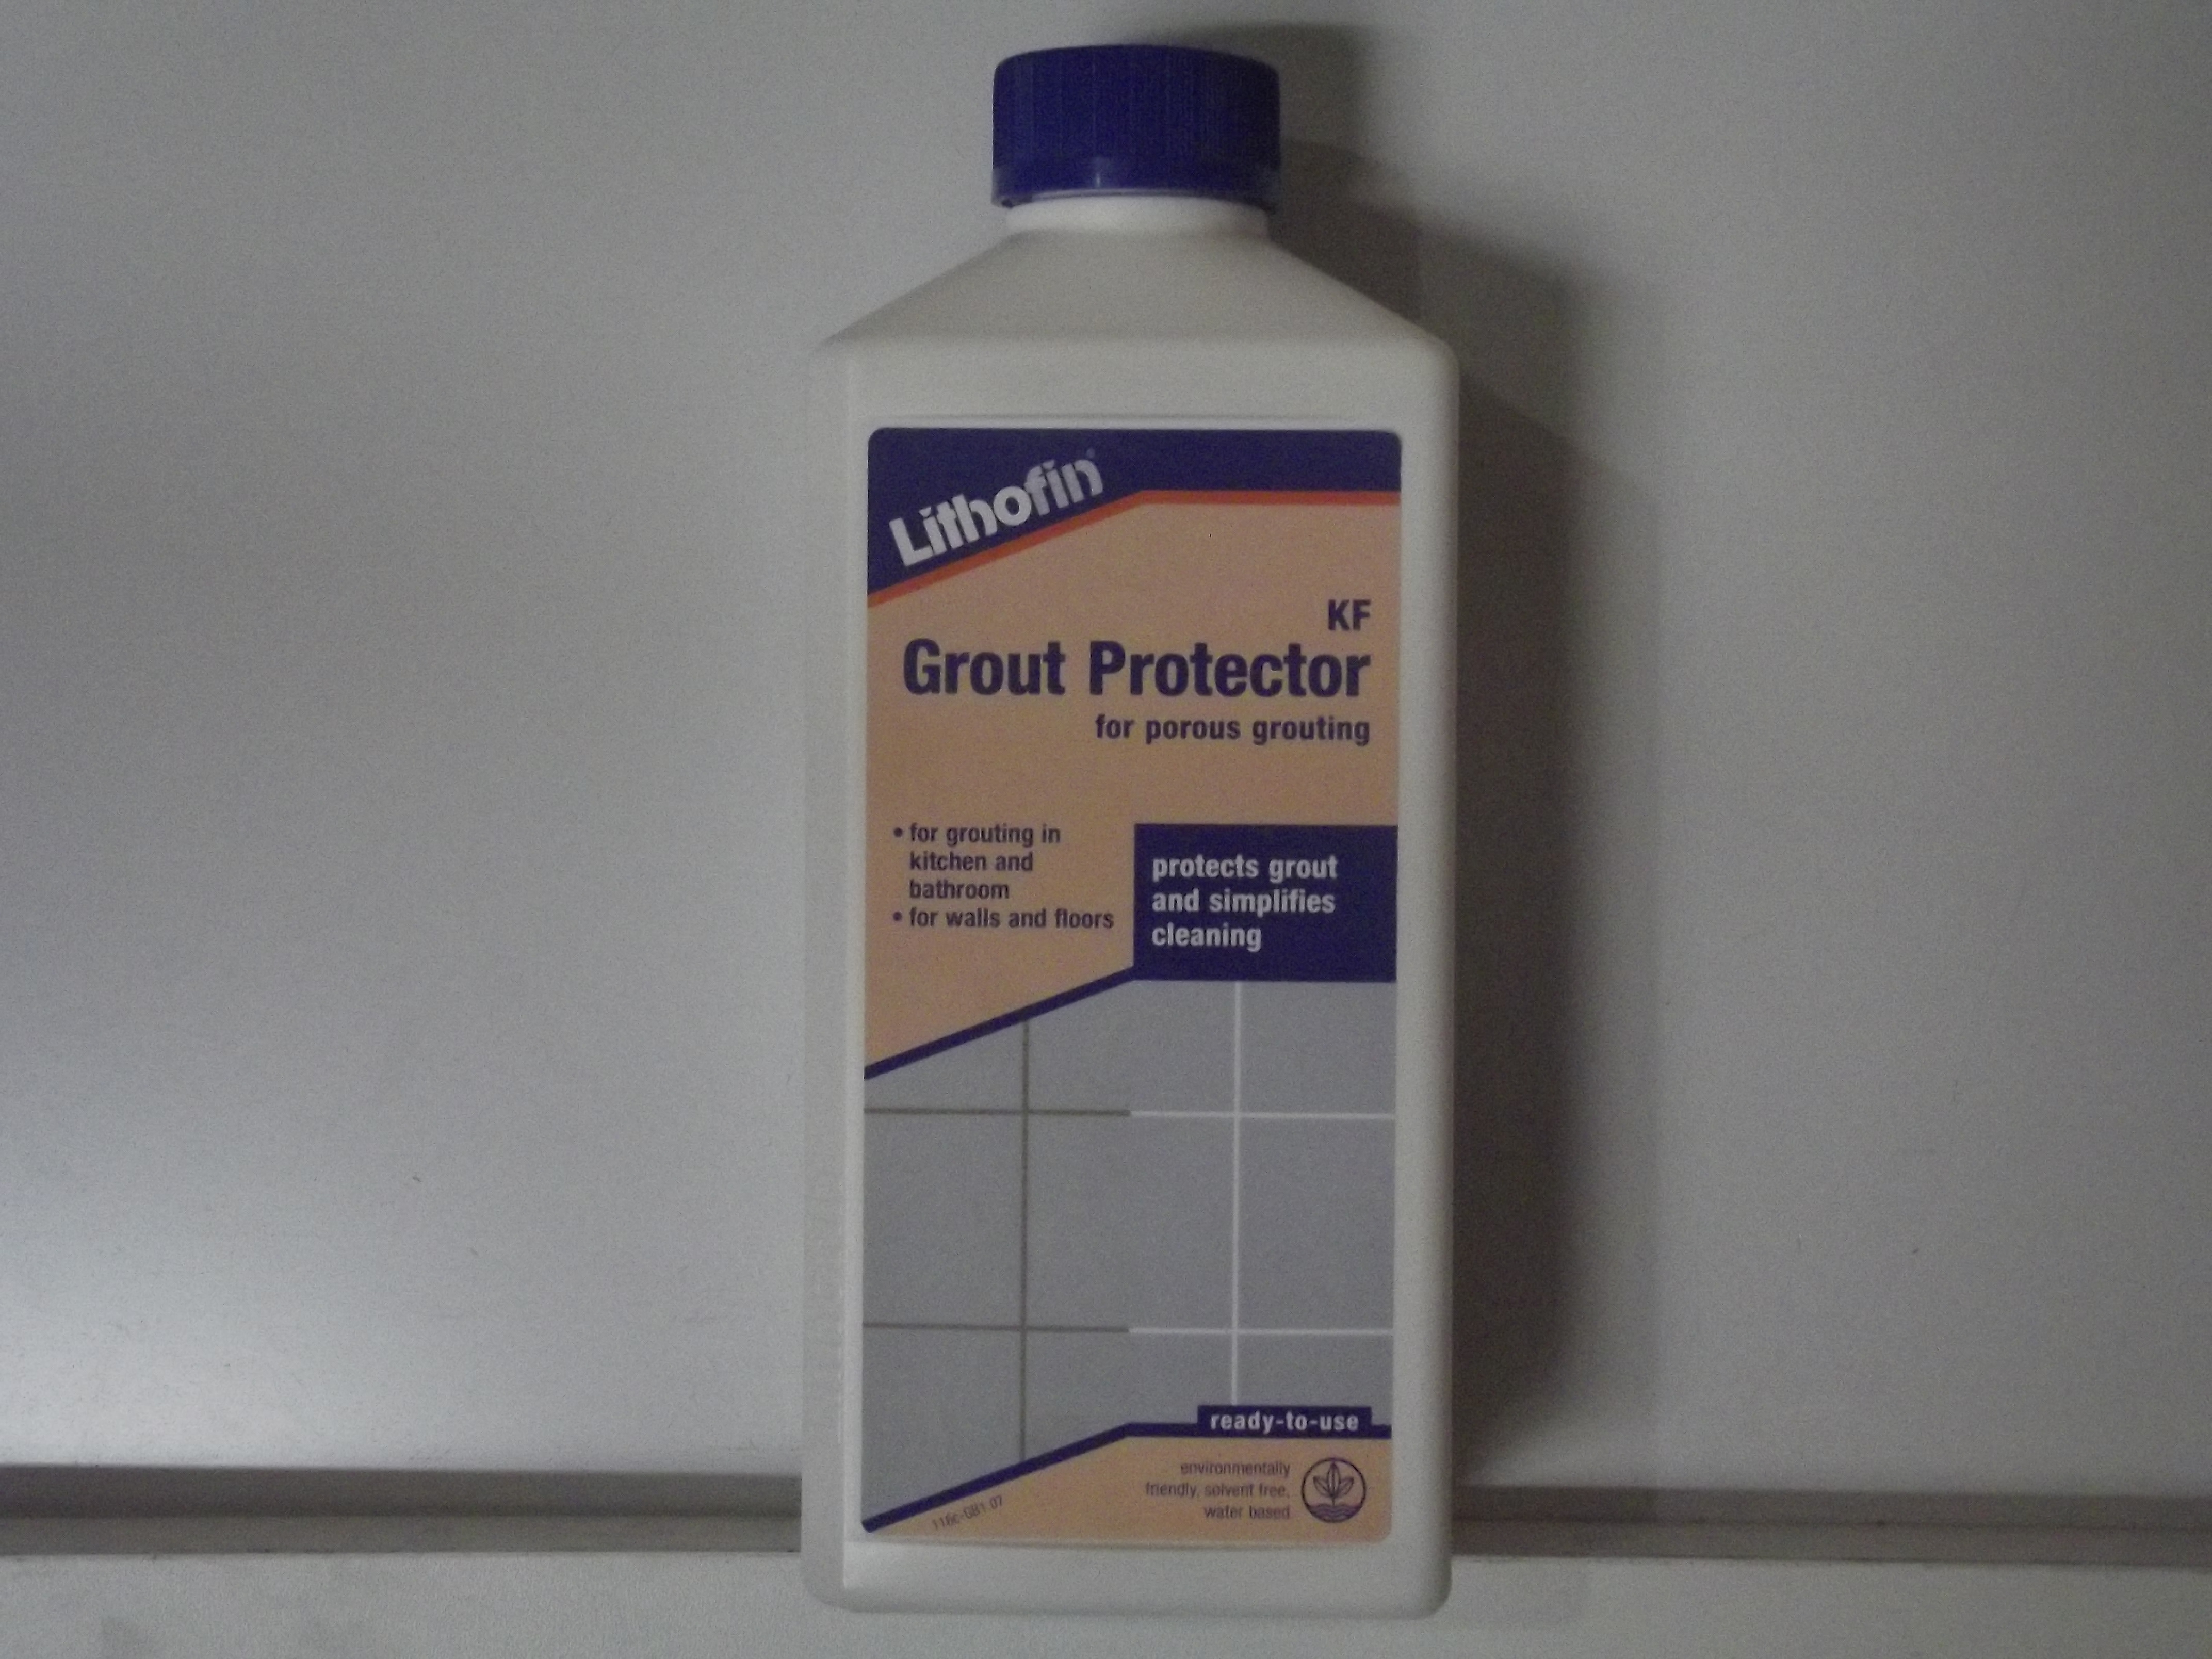 The 7 Best Grout Sealers of 2019 - The Spruce